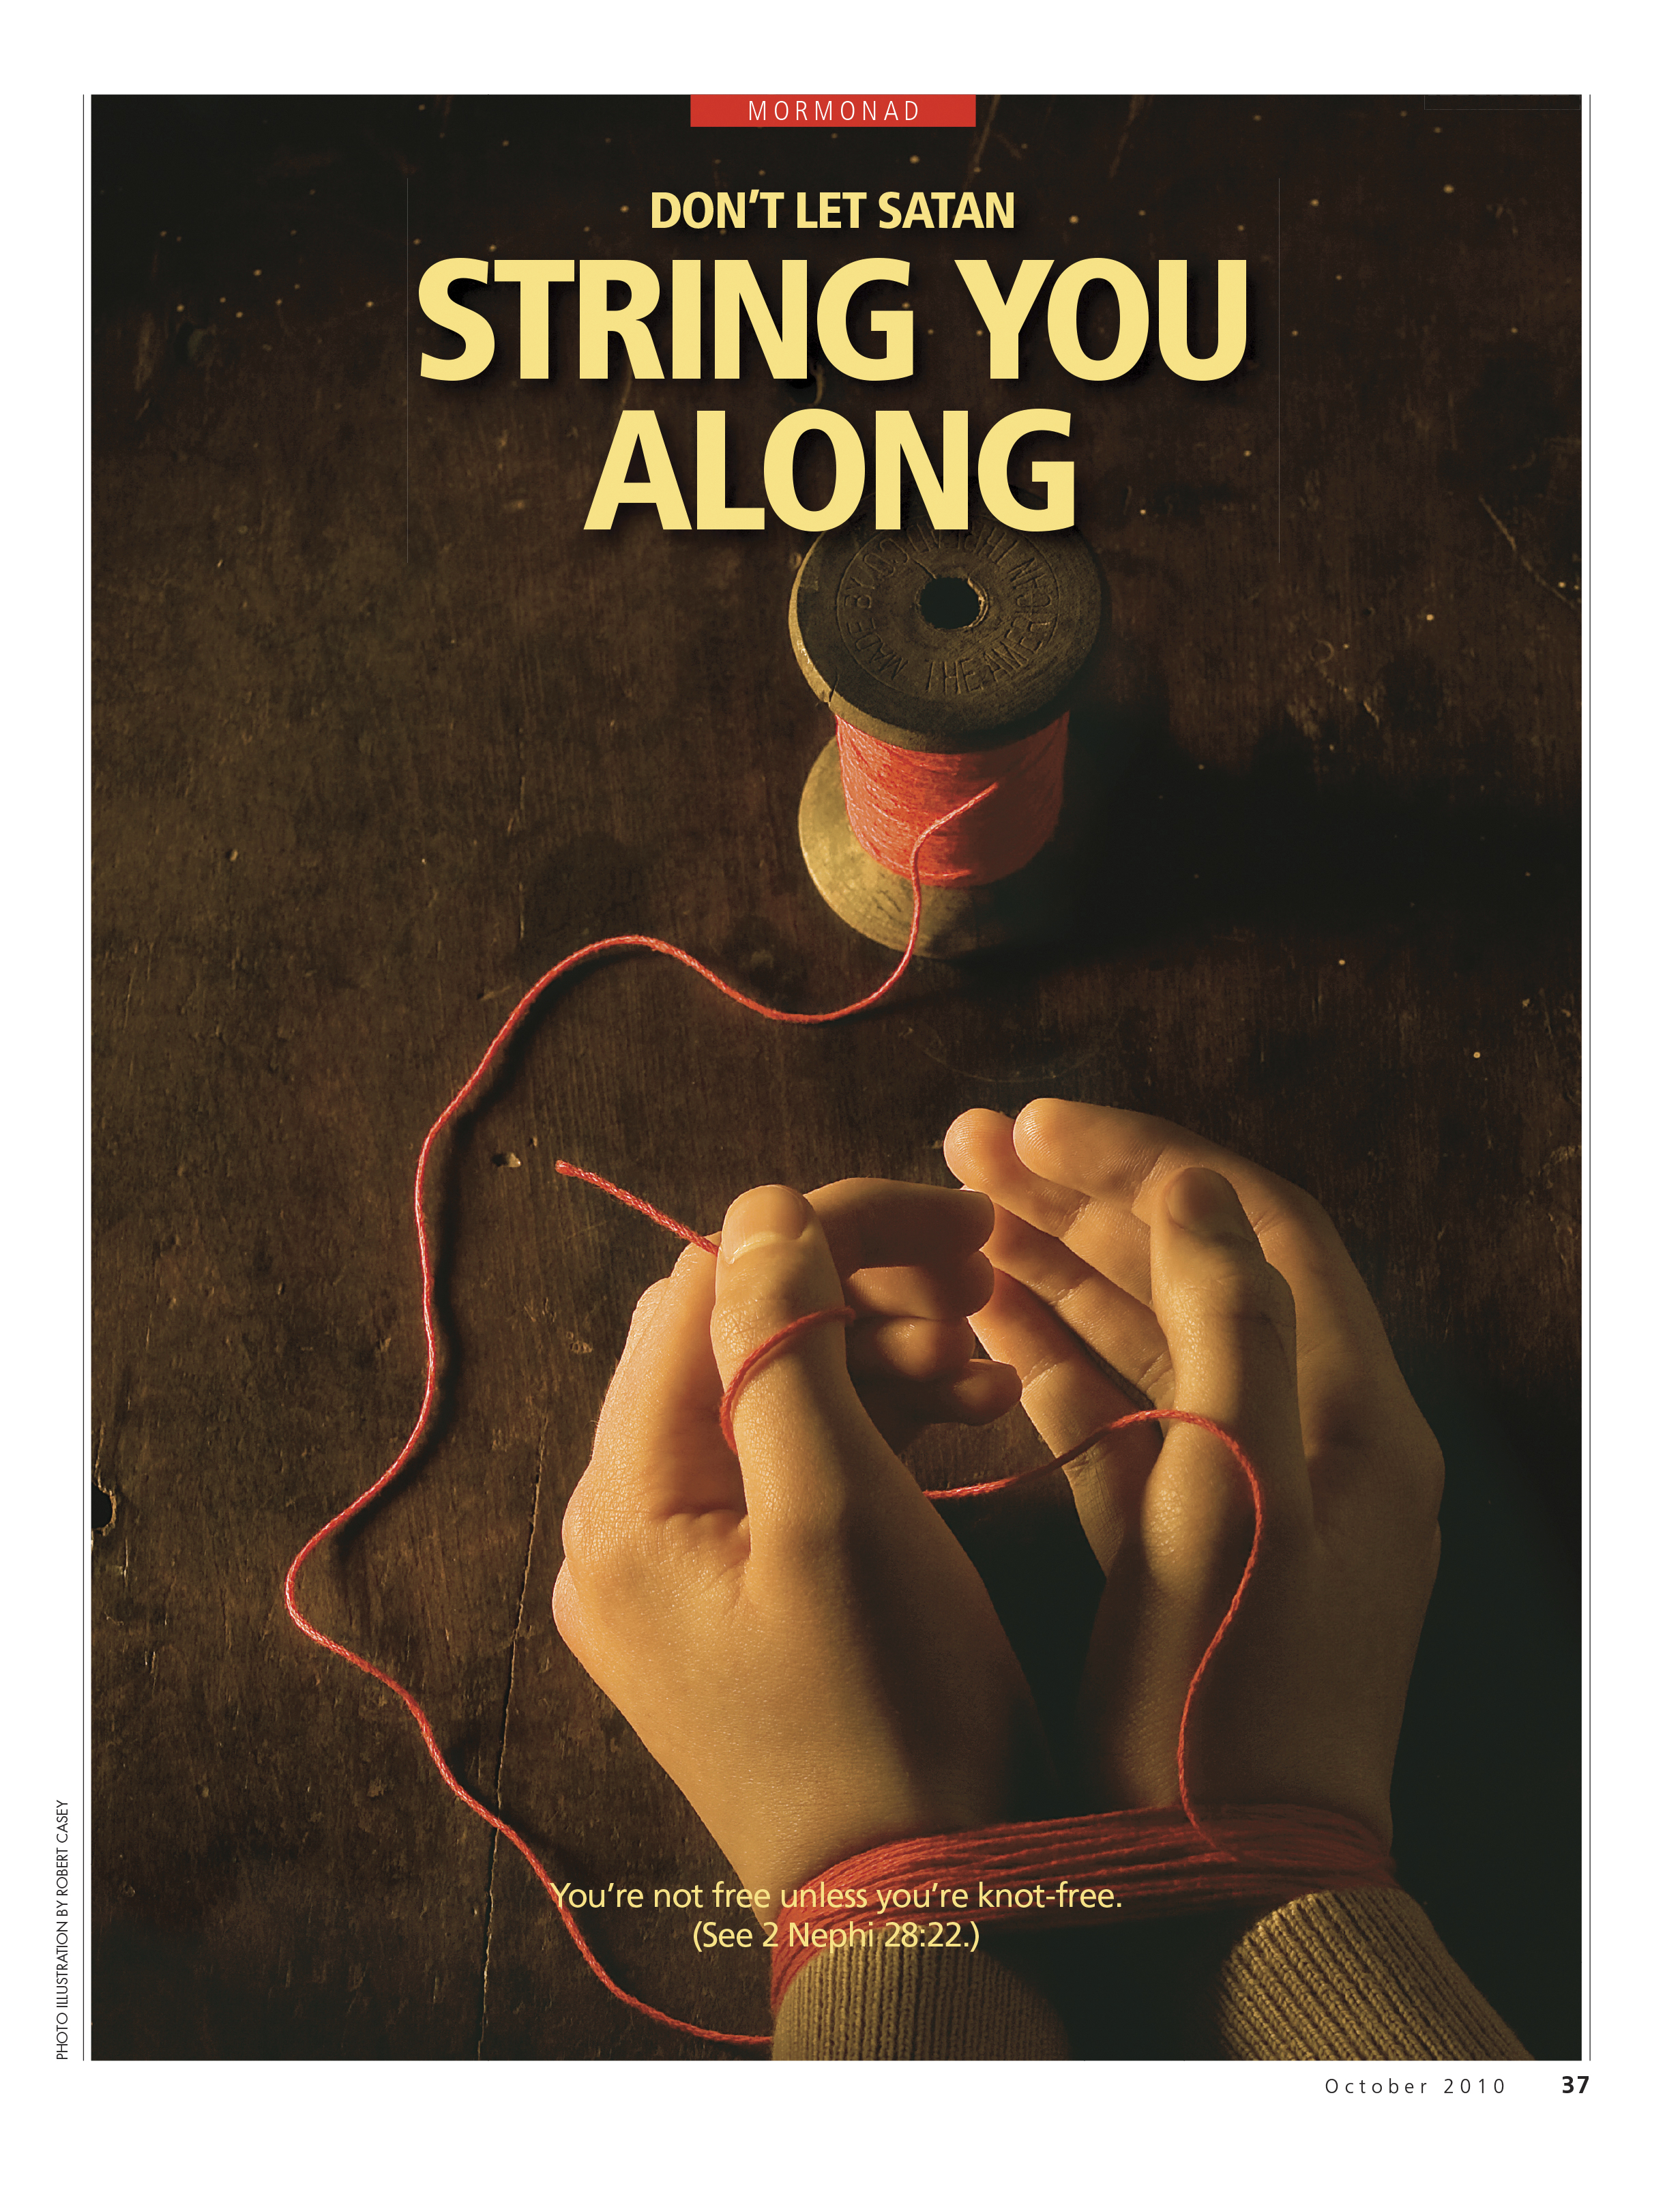 Don't Let Satan String You Along. You're not free unless you're knot-free. (See 2 Nephi 28:22.) Oct. 2010 © undefined ipCode 1.